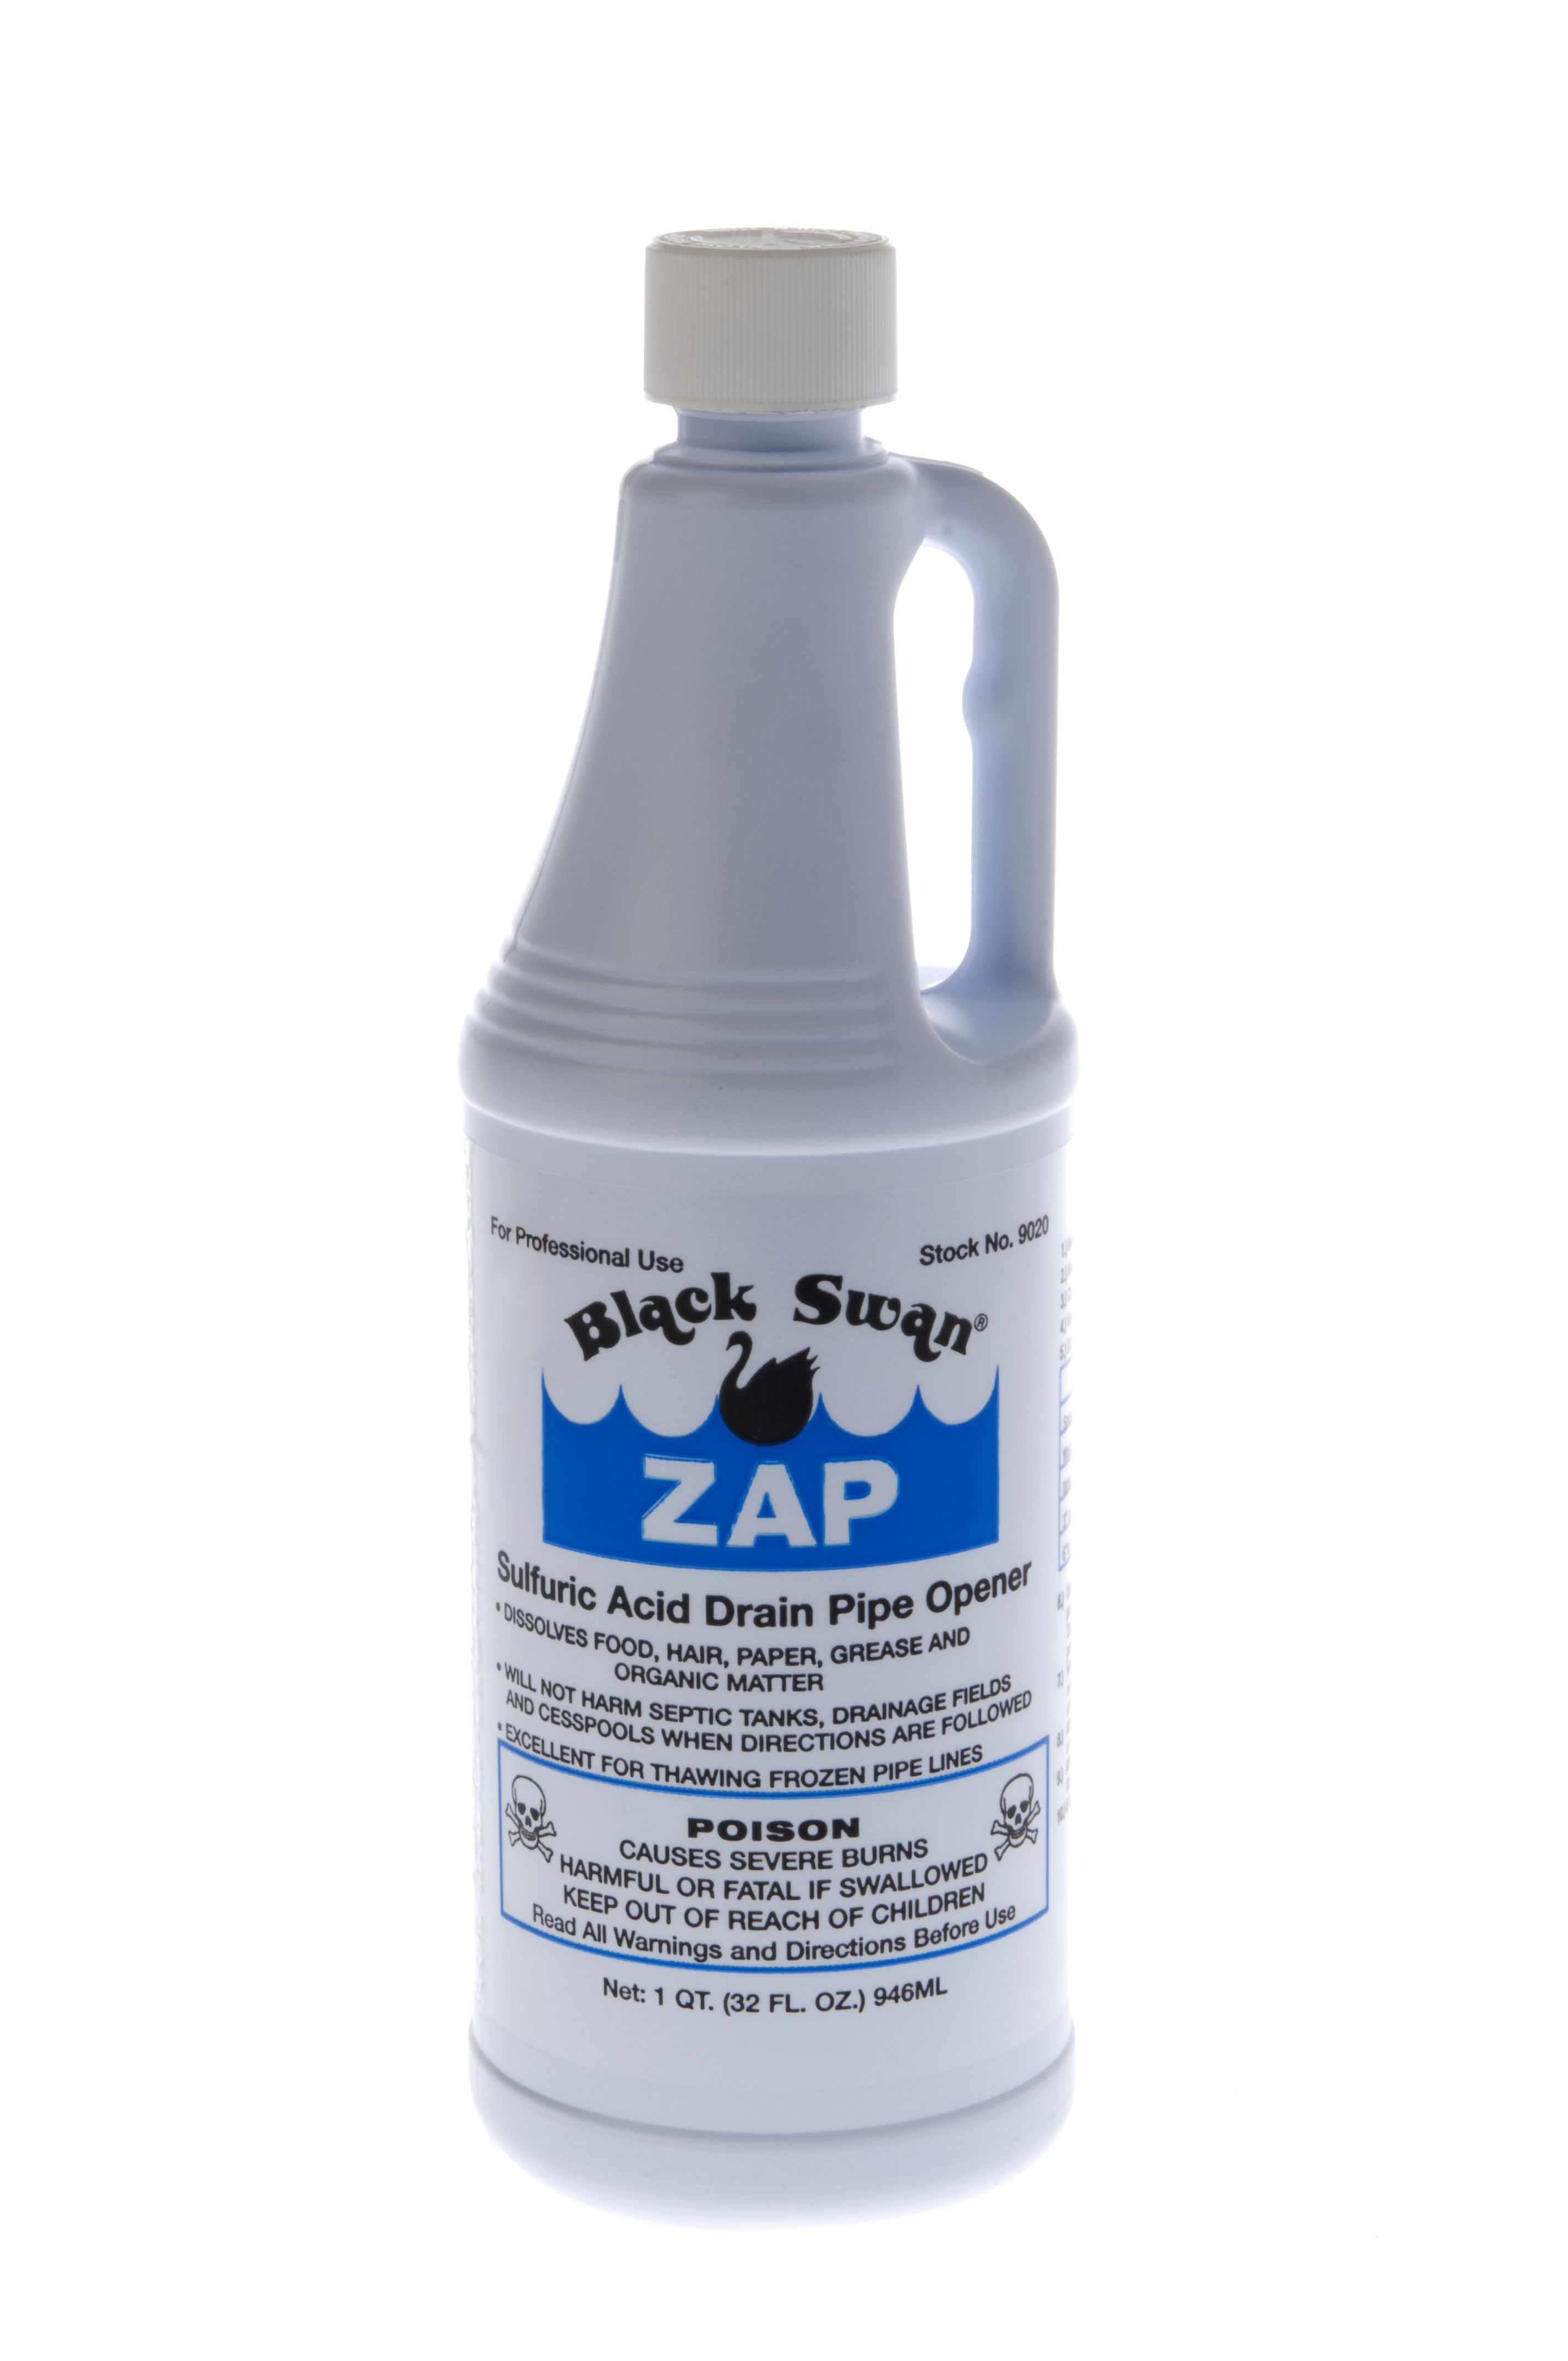 ZAP quickly clears clogged drains and waste lines: thaws frozen ...